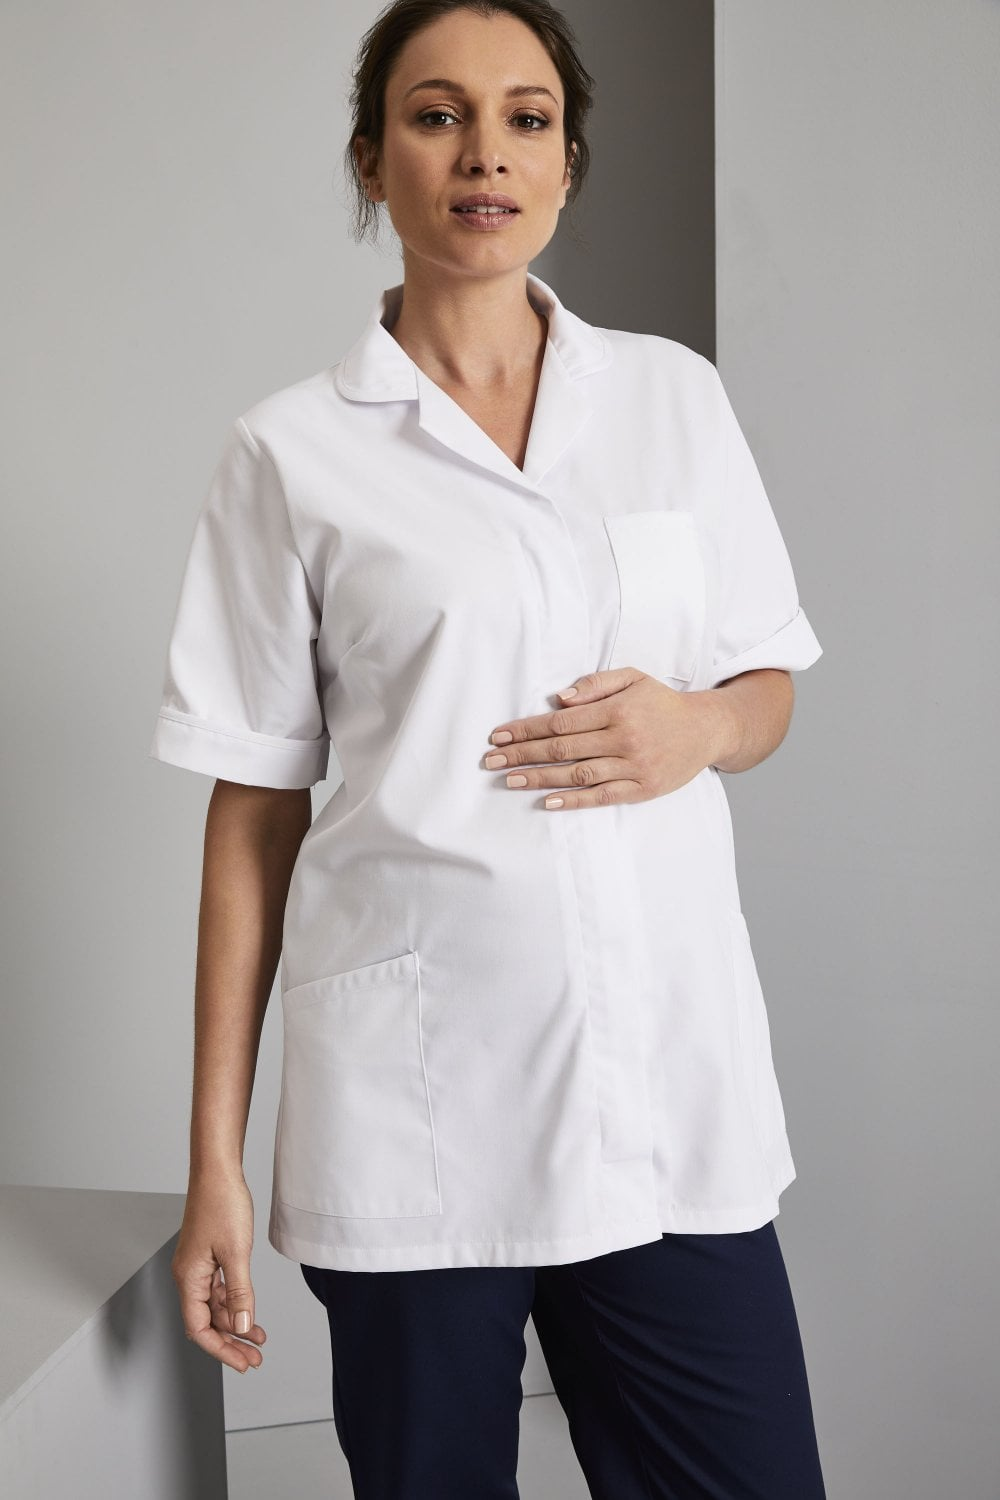 f78b72a700b72 Maternity Tunic with Concealed Zip- Simon Jersey Salon Uniforms